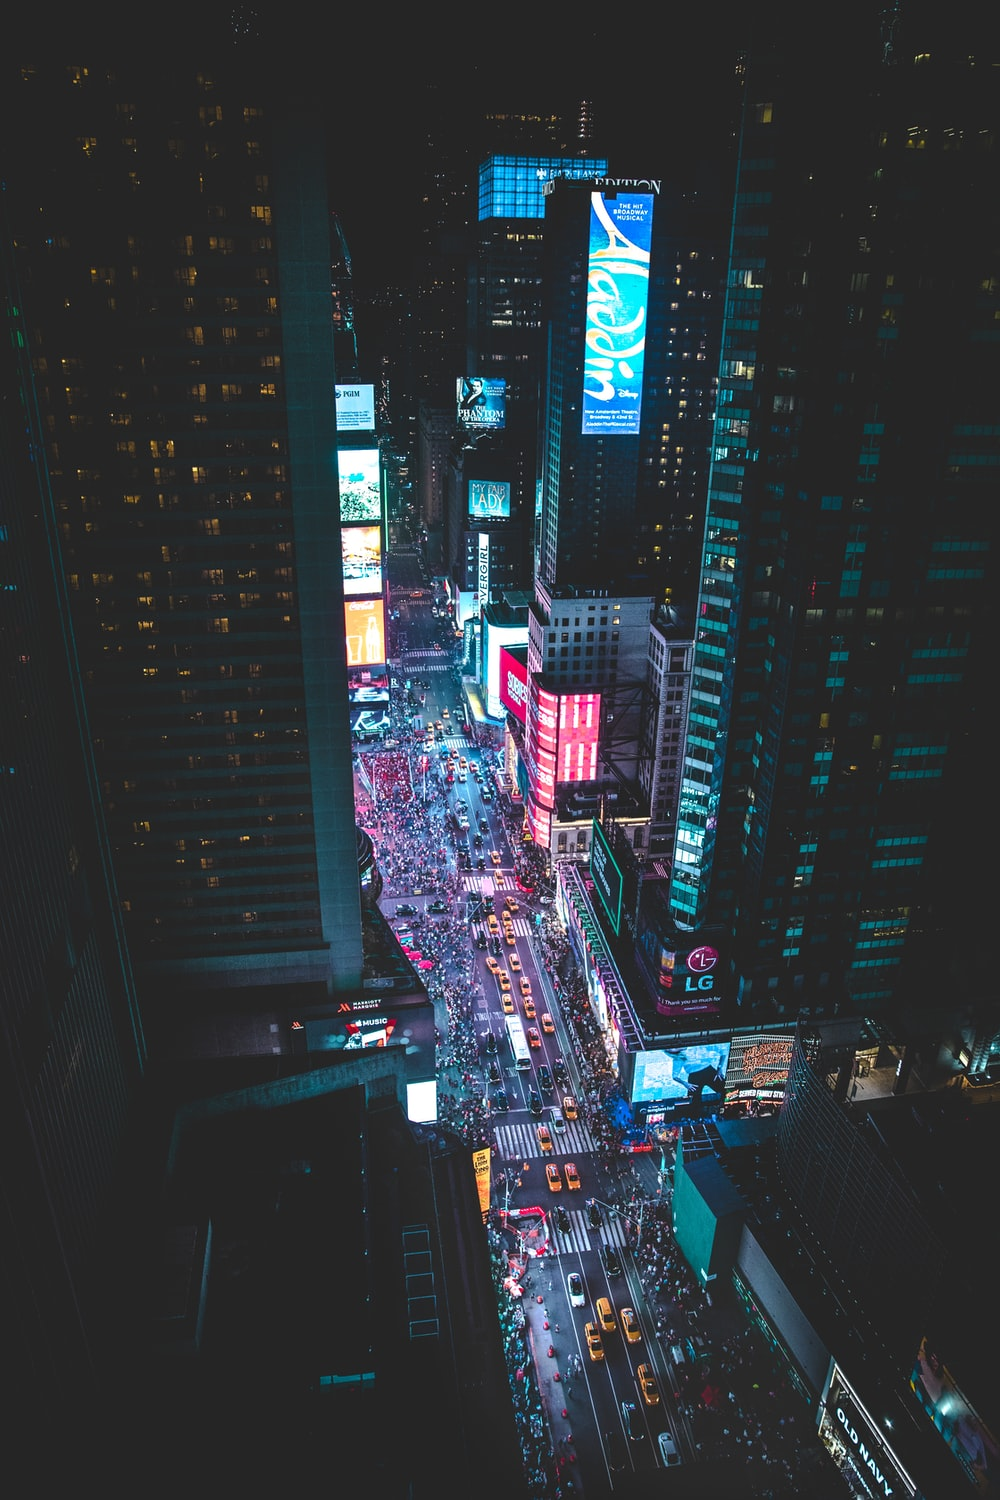 aerial photo of a busy city during night time